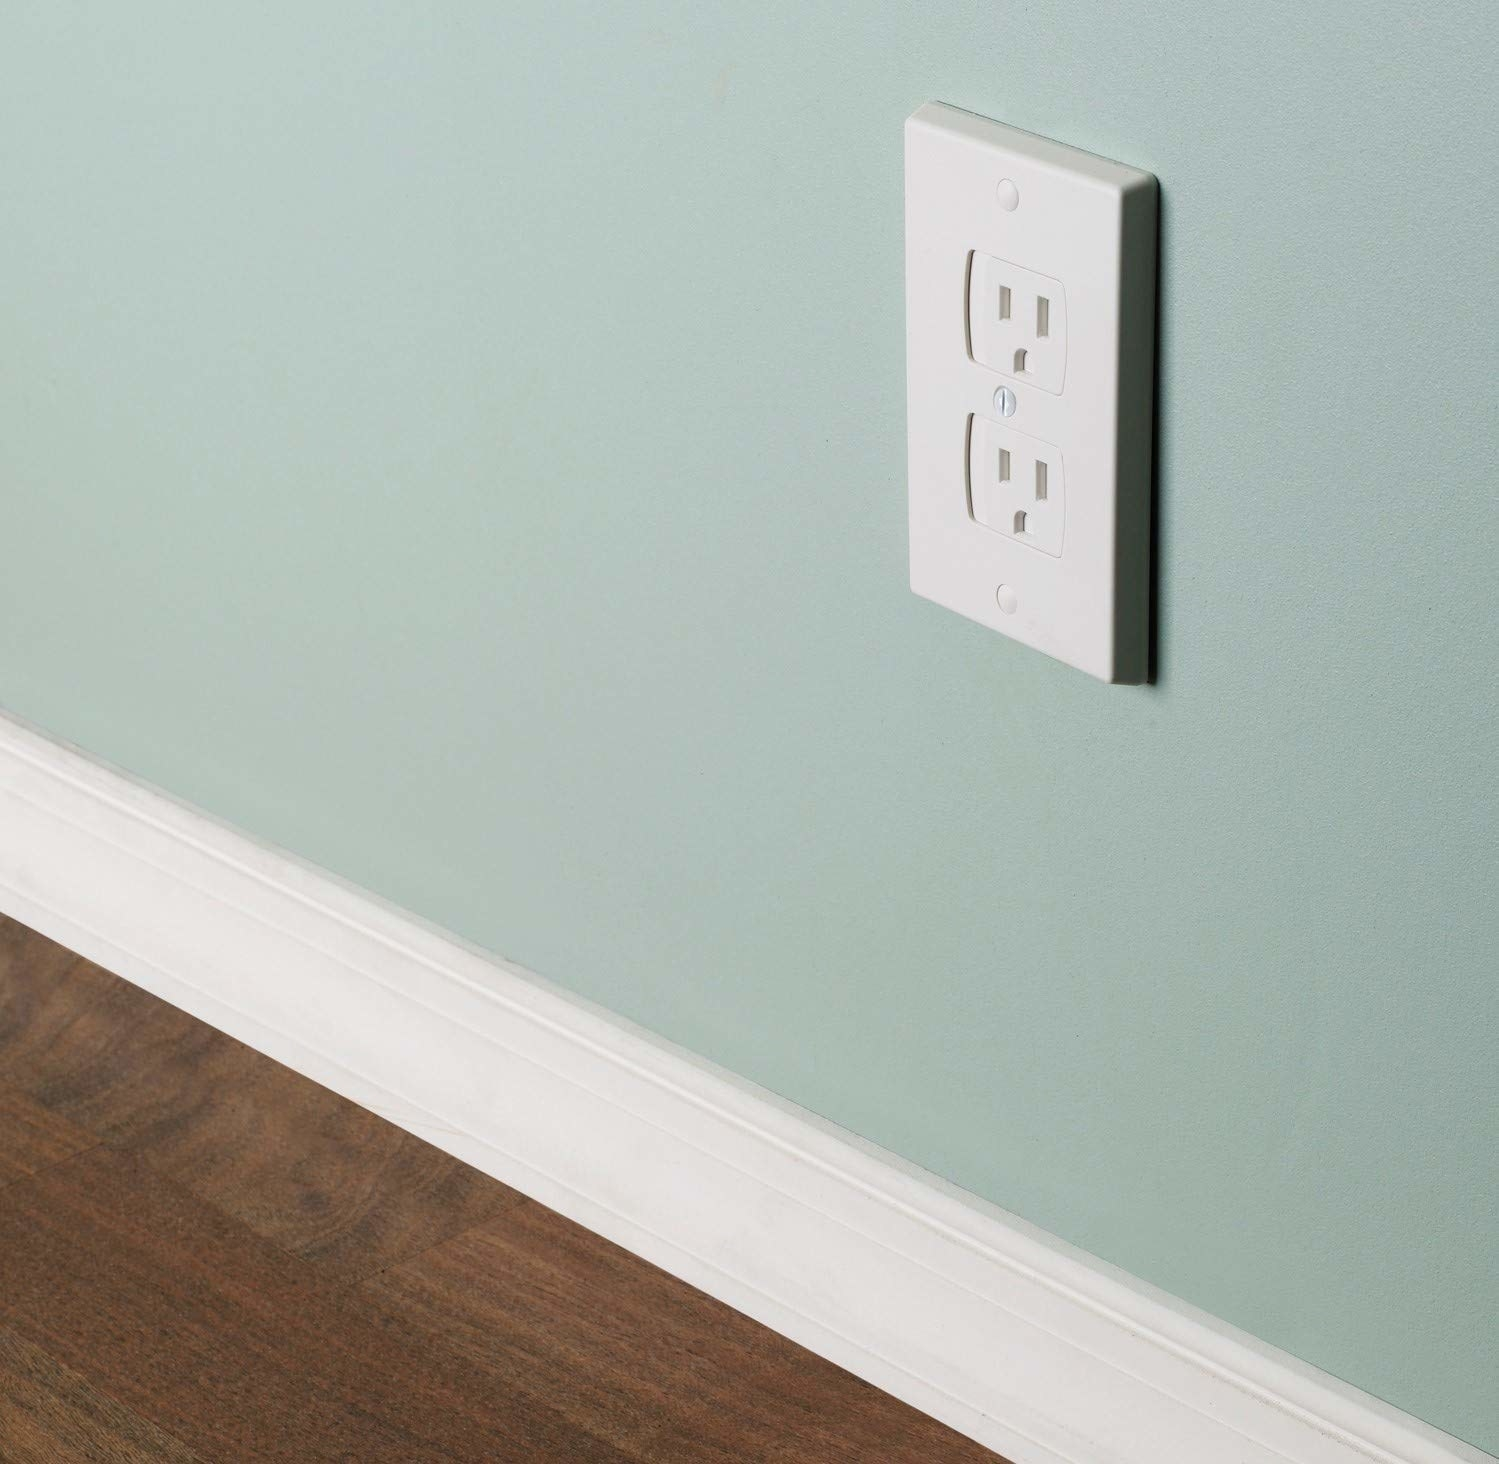 A white wall outlet with slide covers